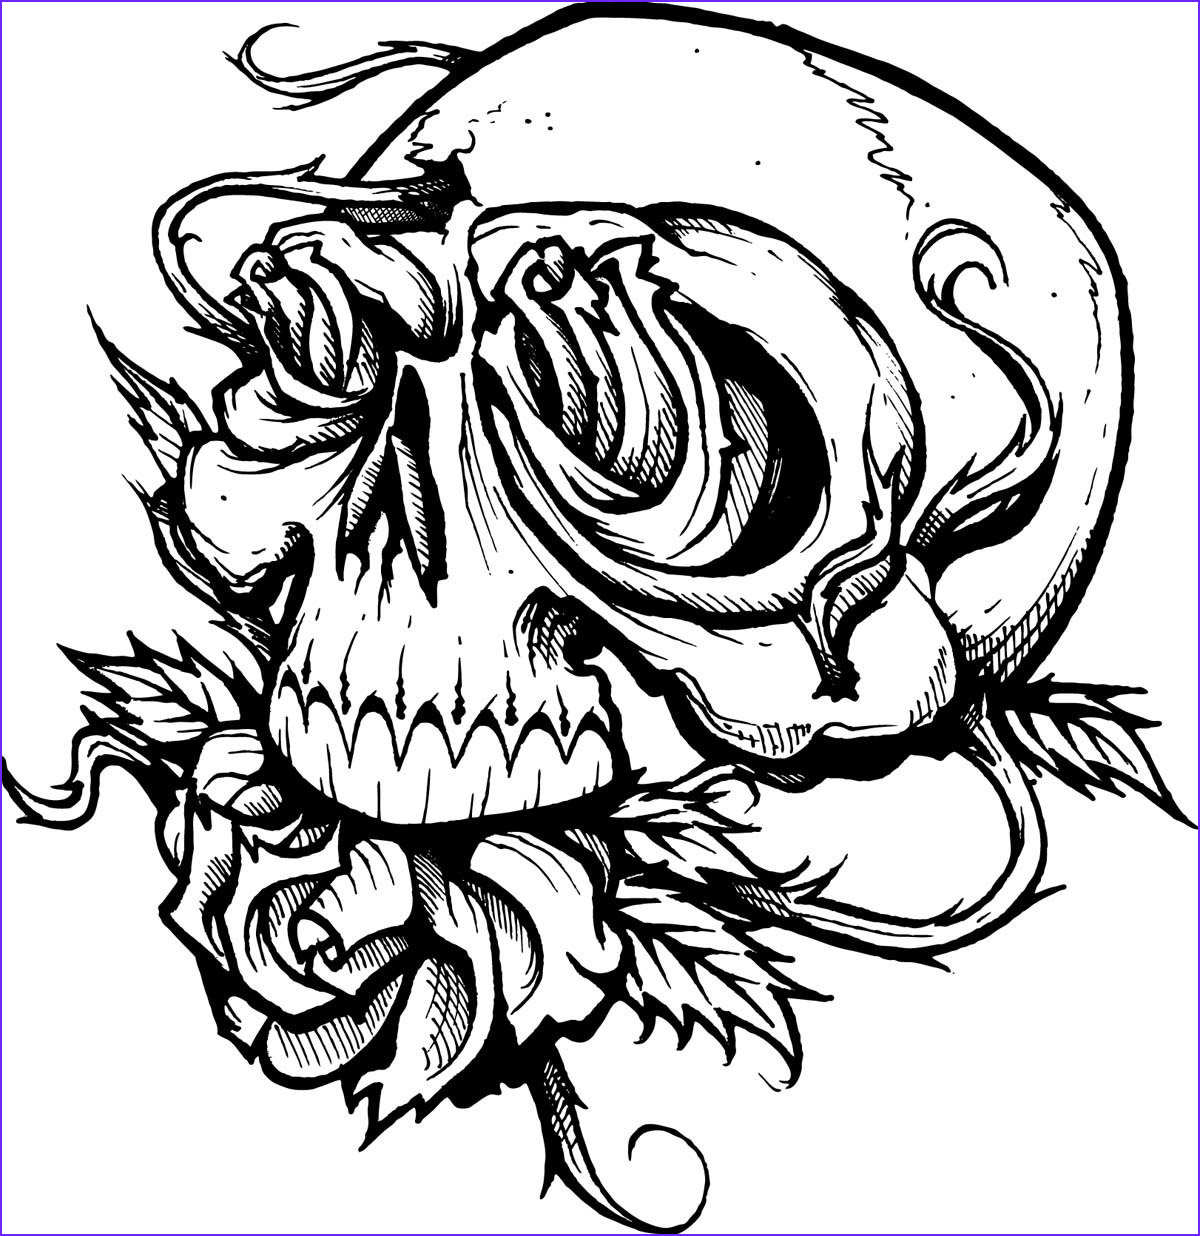 Halloween Coloring Pages Adults Cool Images Free Printable Halloween Coloring Pages for Adults Best